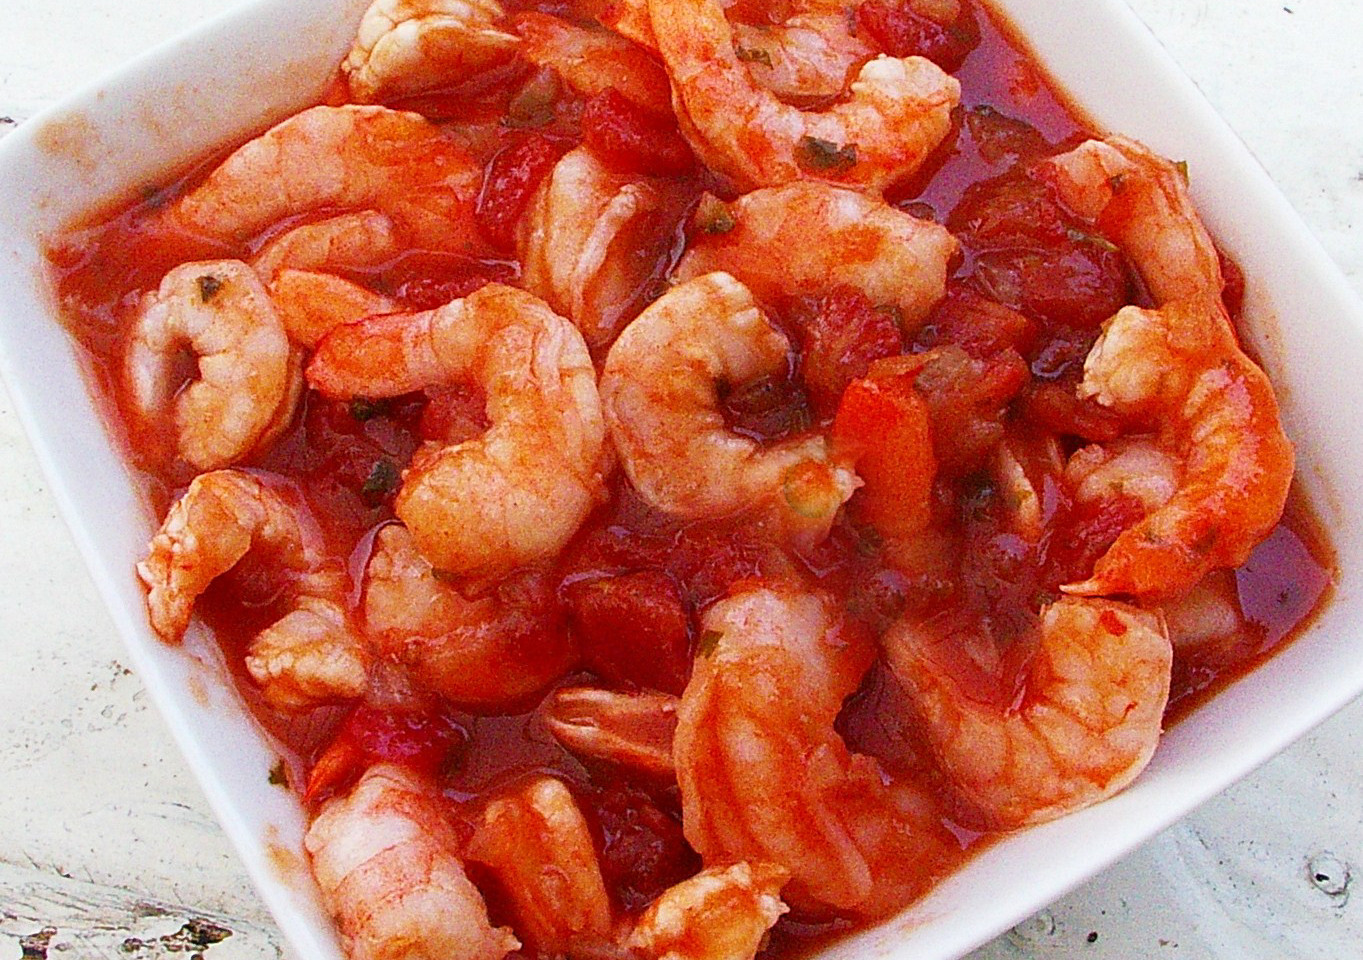 Mix your favourite Aji with ketchup and toss in the shrimp!